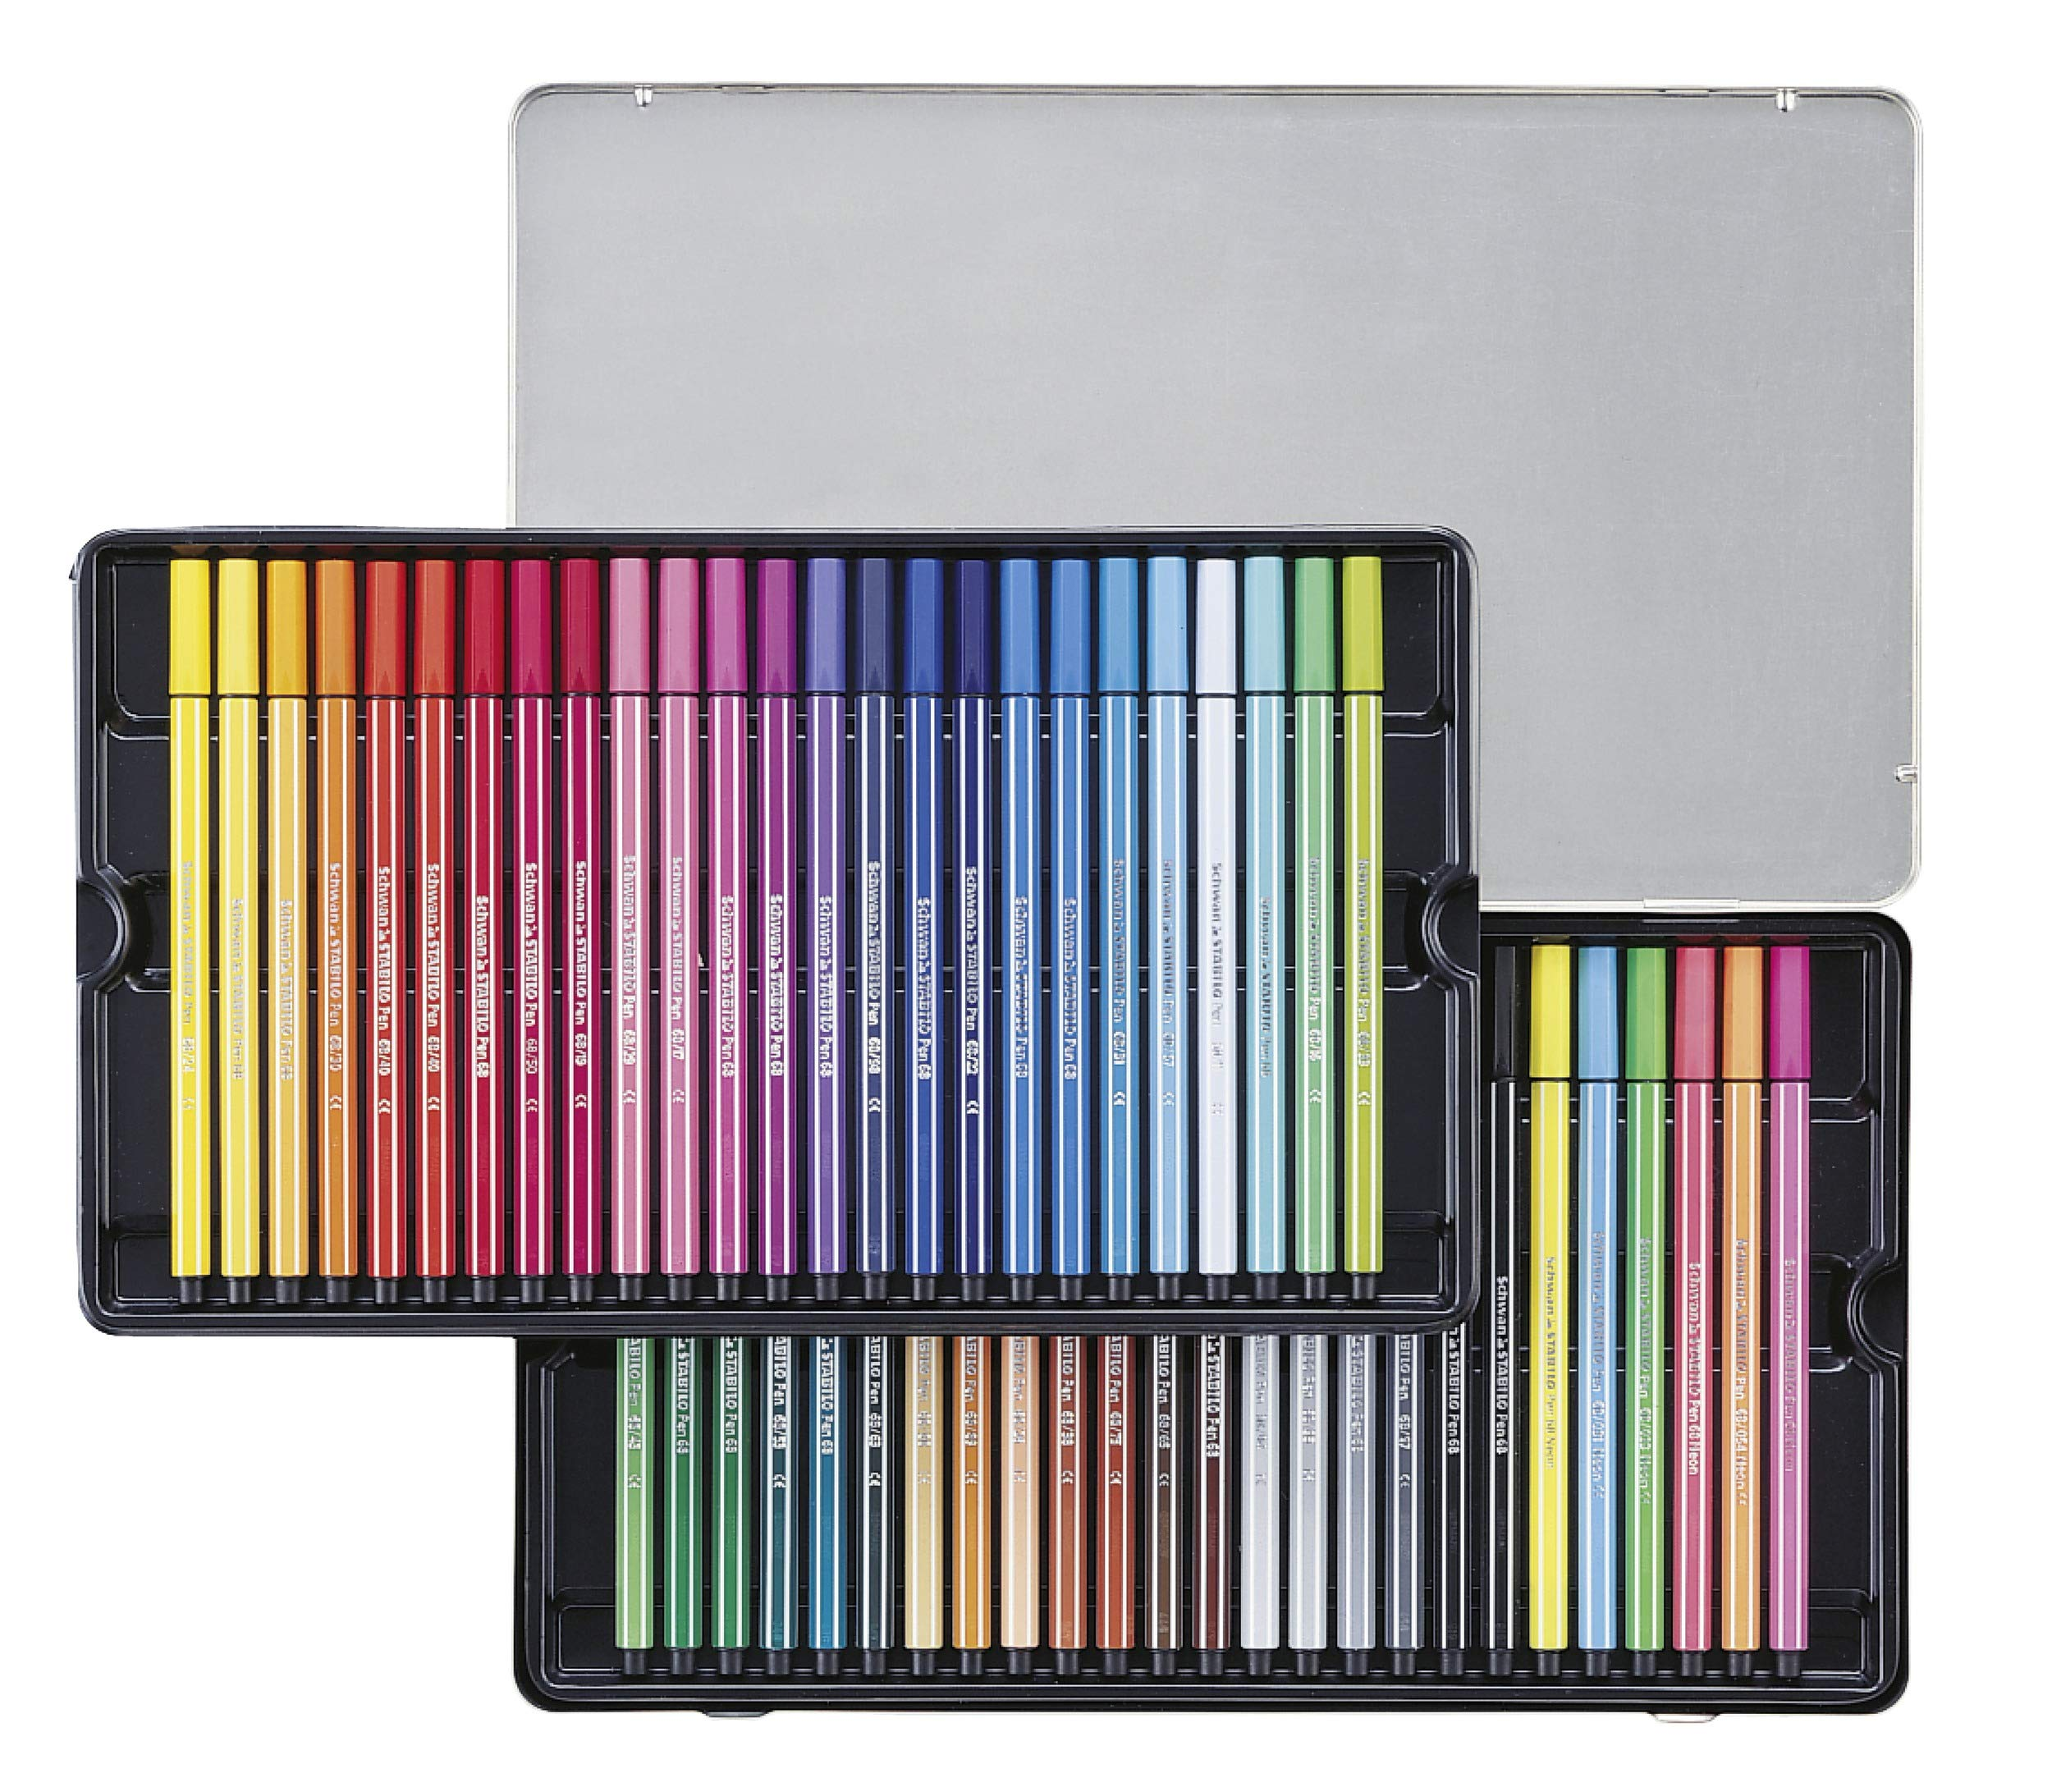 Stabilo Pen 68 Drawing Felt Tip Pens in Metal Box x 50 Assorted Colours by Stabilo (Image #2)